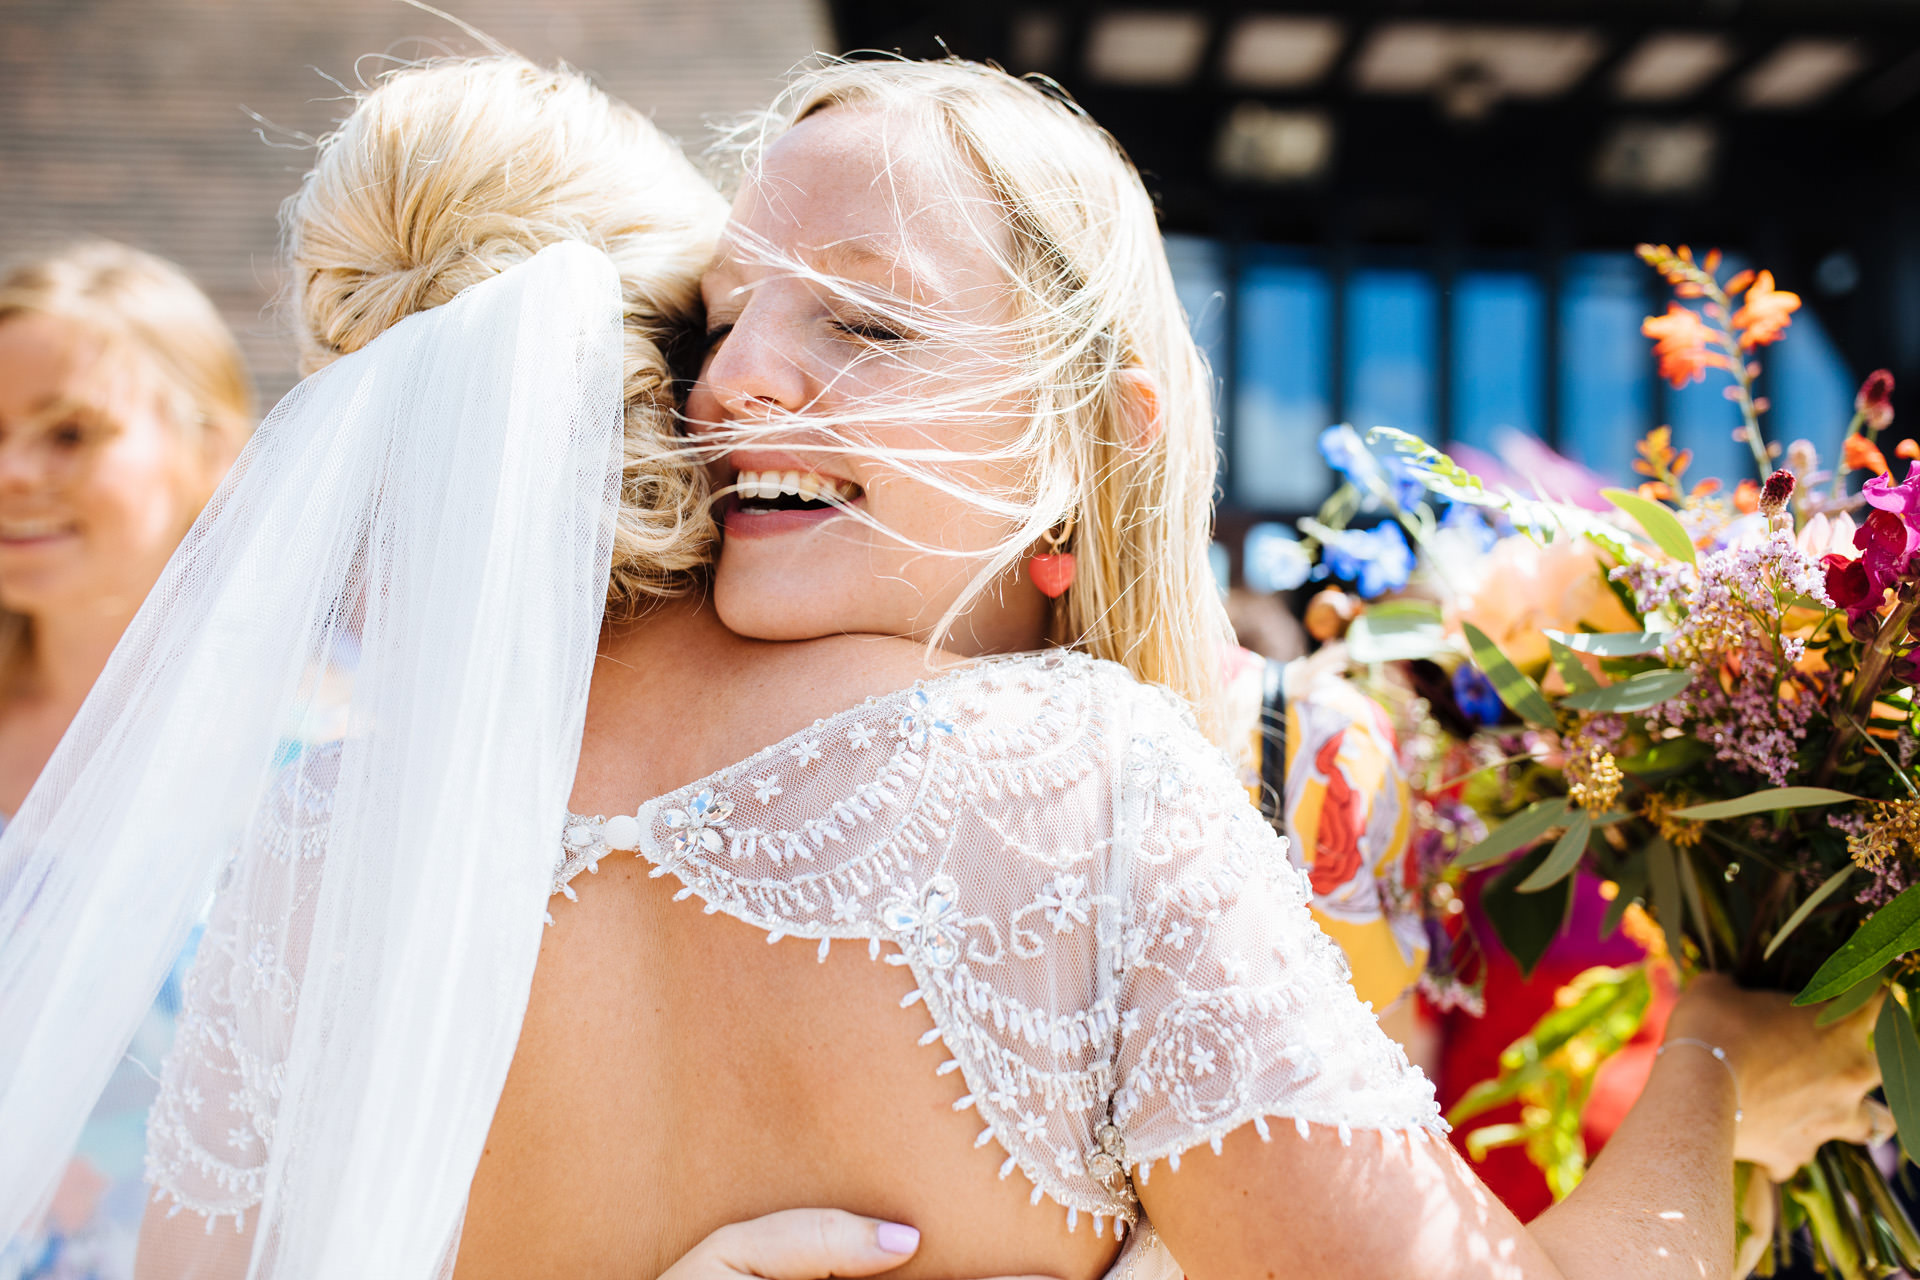 wedding guest with blonde hair and red earrings hugging bride smiling